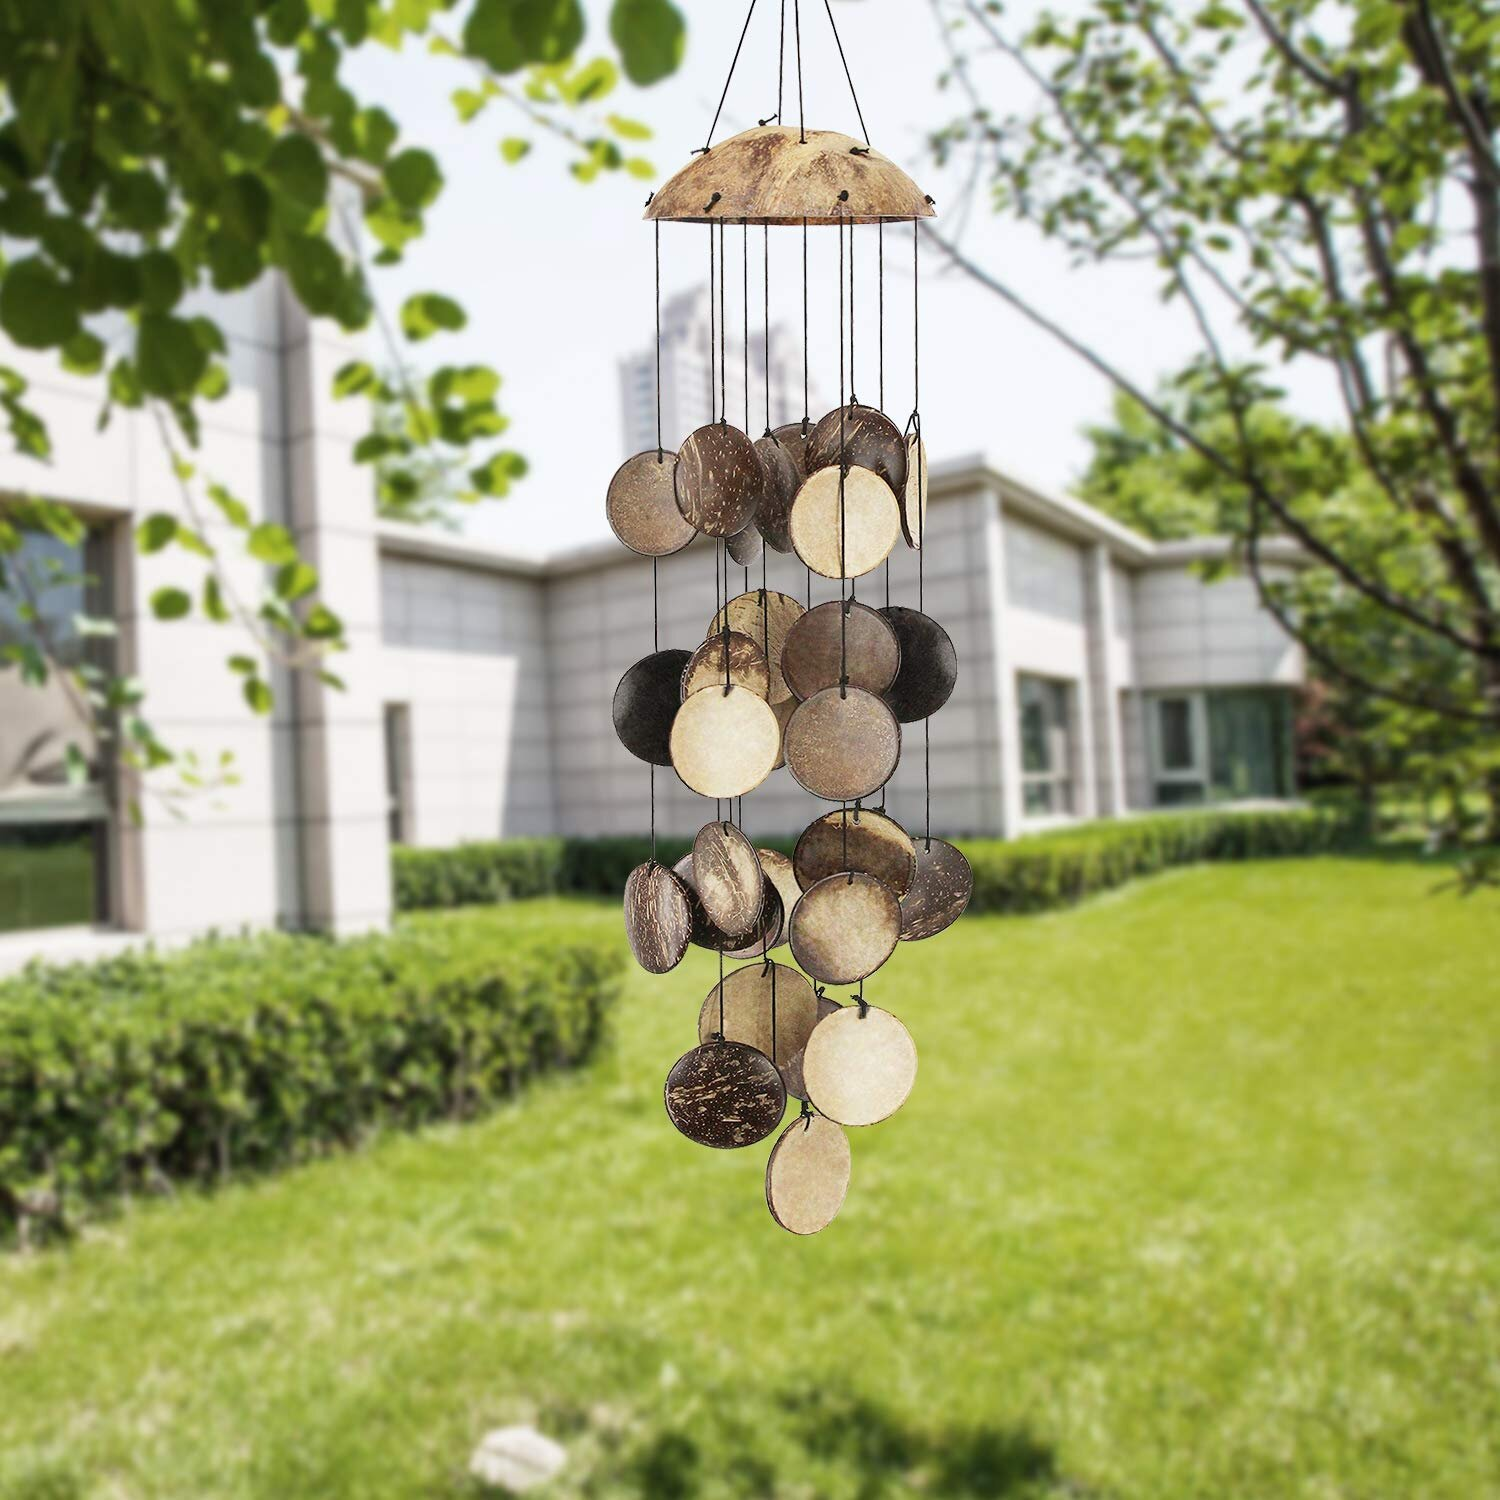 Wind Chimes And Bells World Menagerie Lawn Garden Accents You Ll Love In 2021 Wayfair